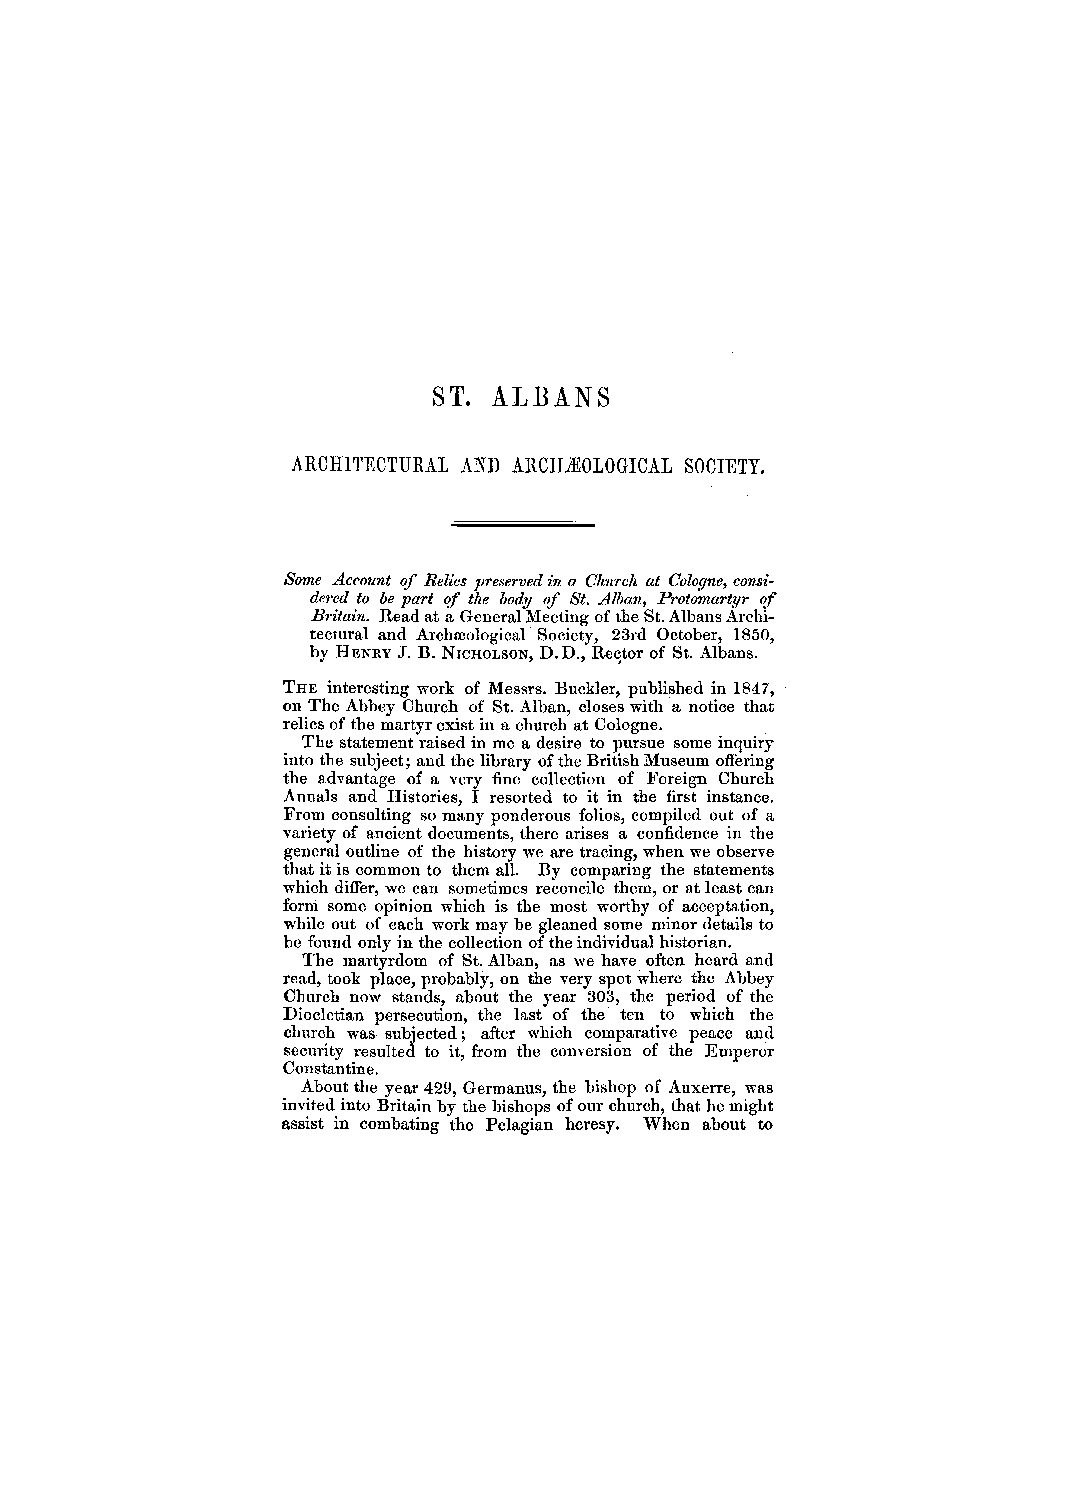 Early publications: 1850